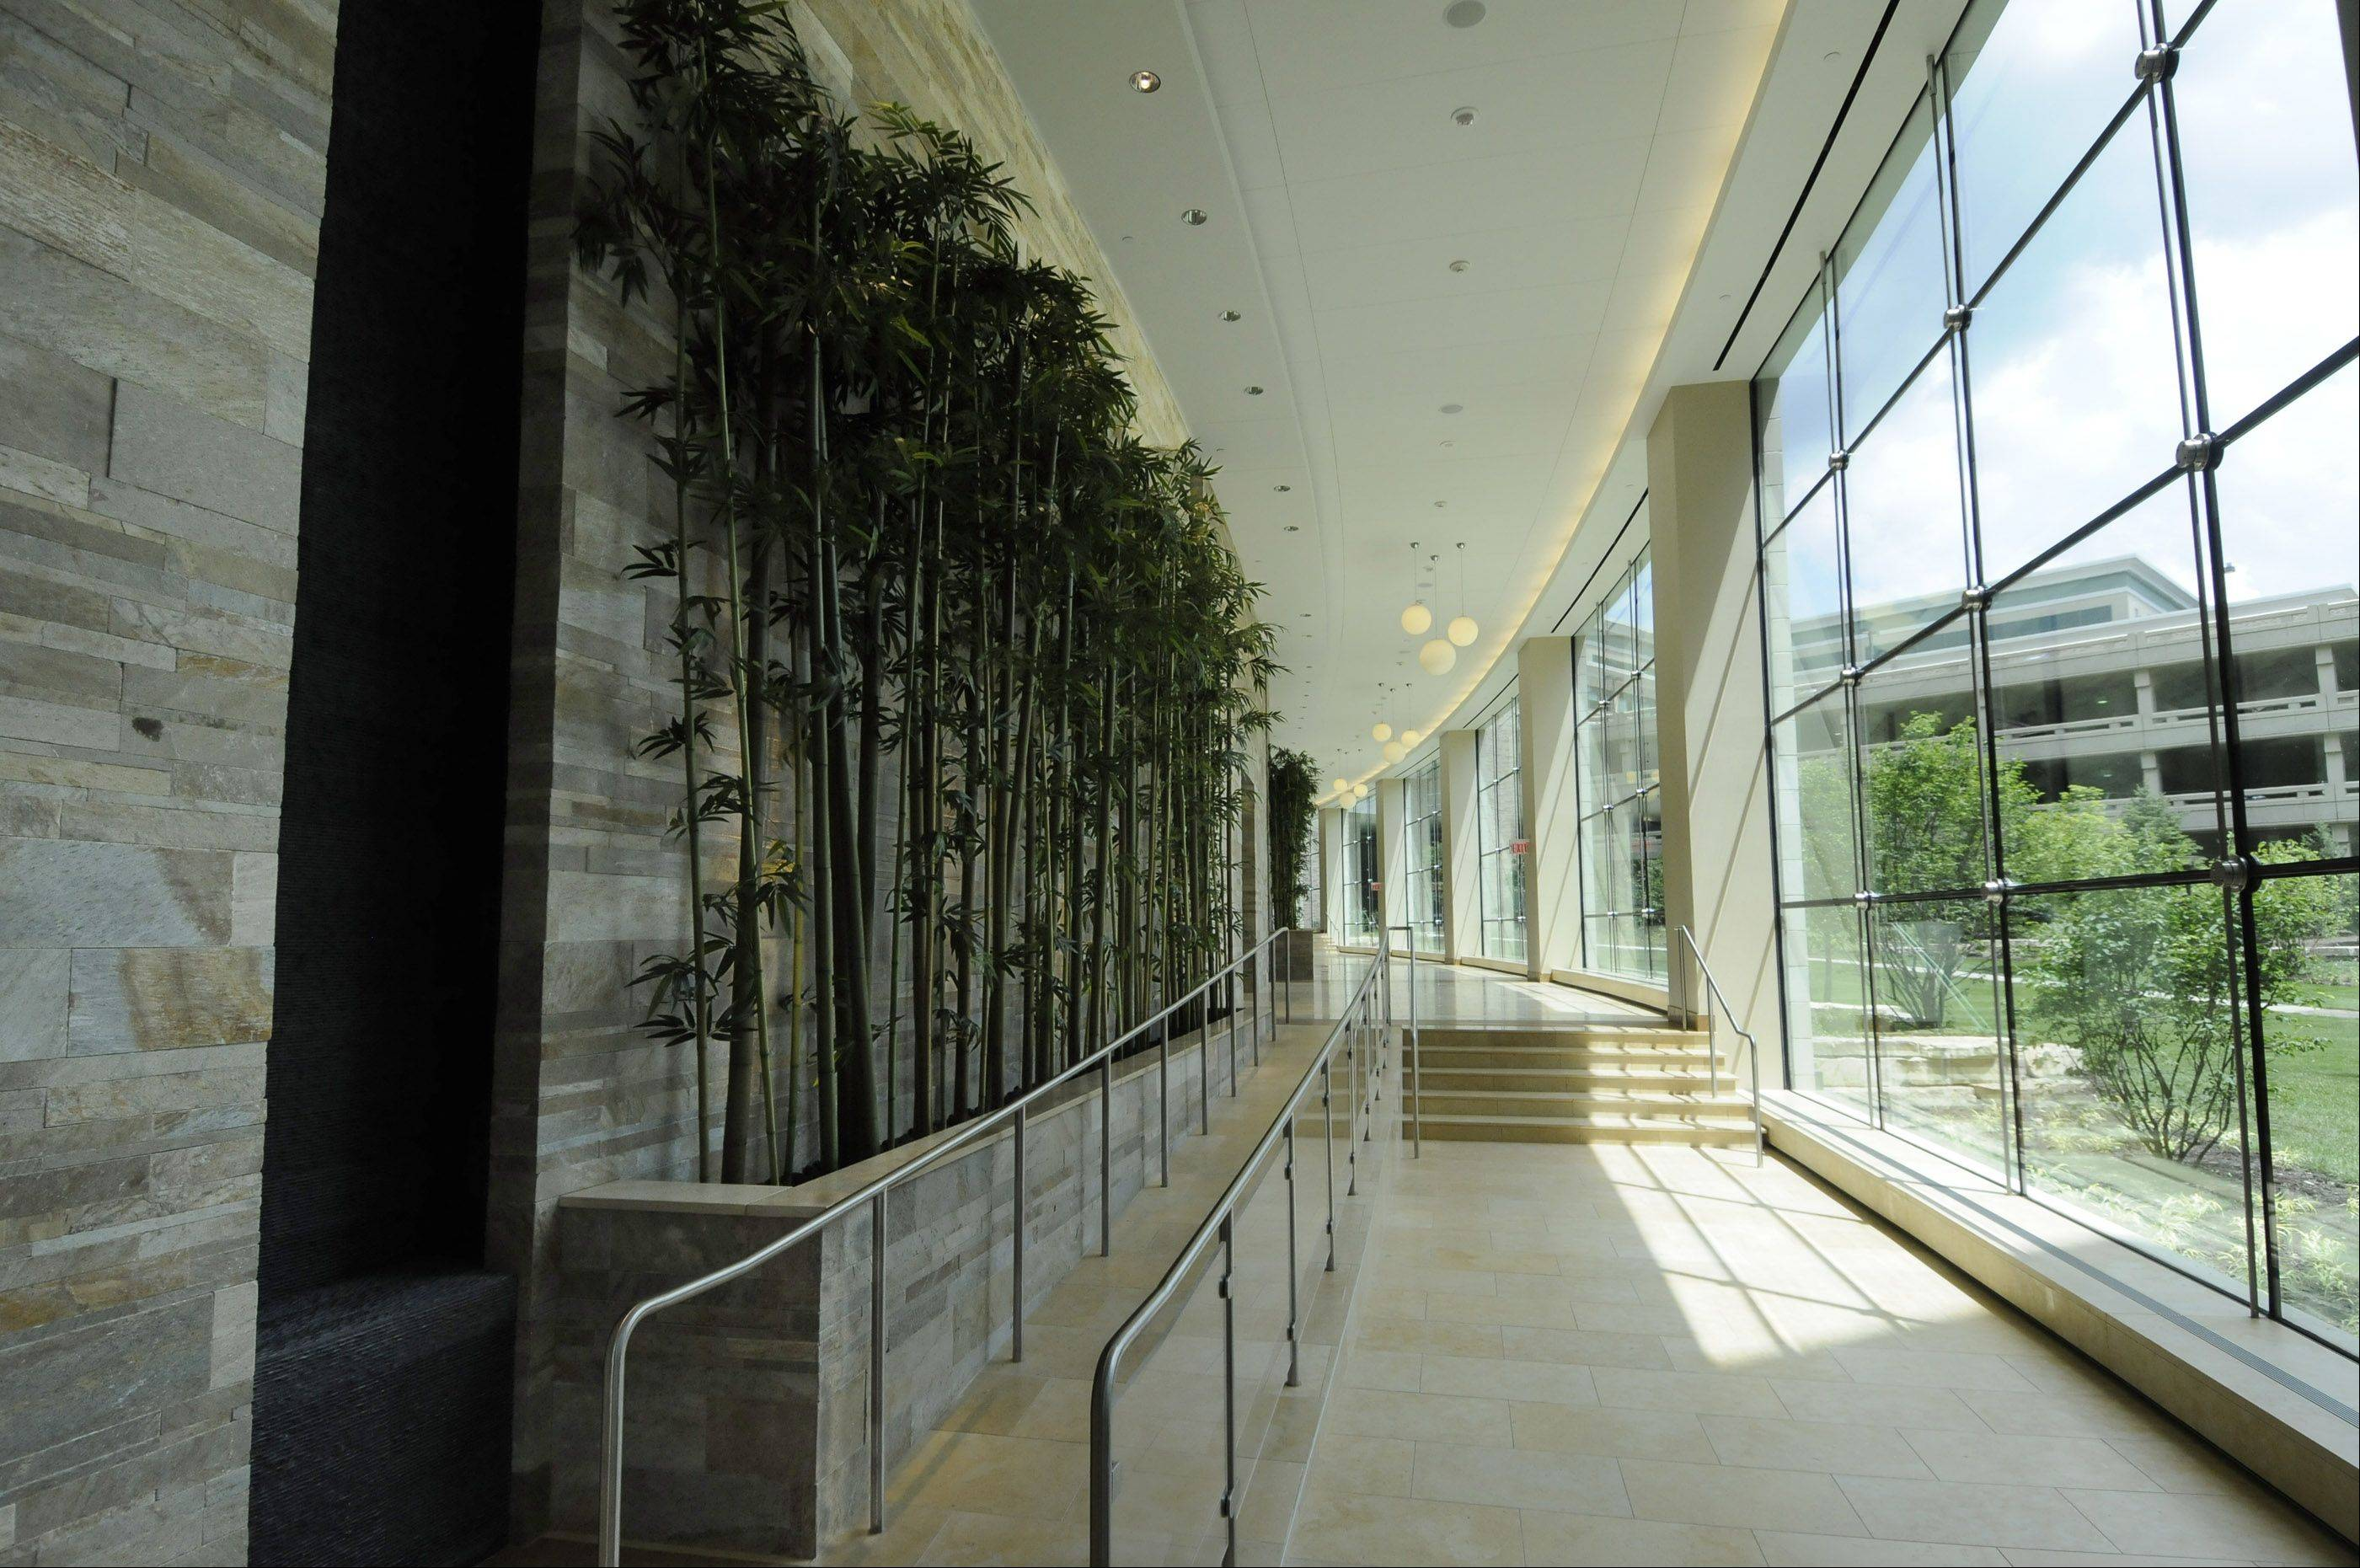 Artificial bamboo shoots are on display in the new wing at Central DuPage Hospital in Winfield.